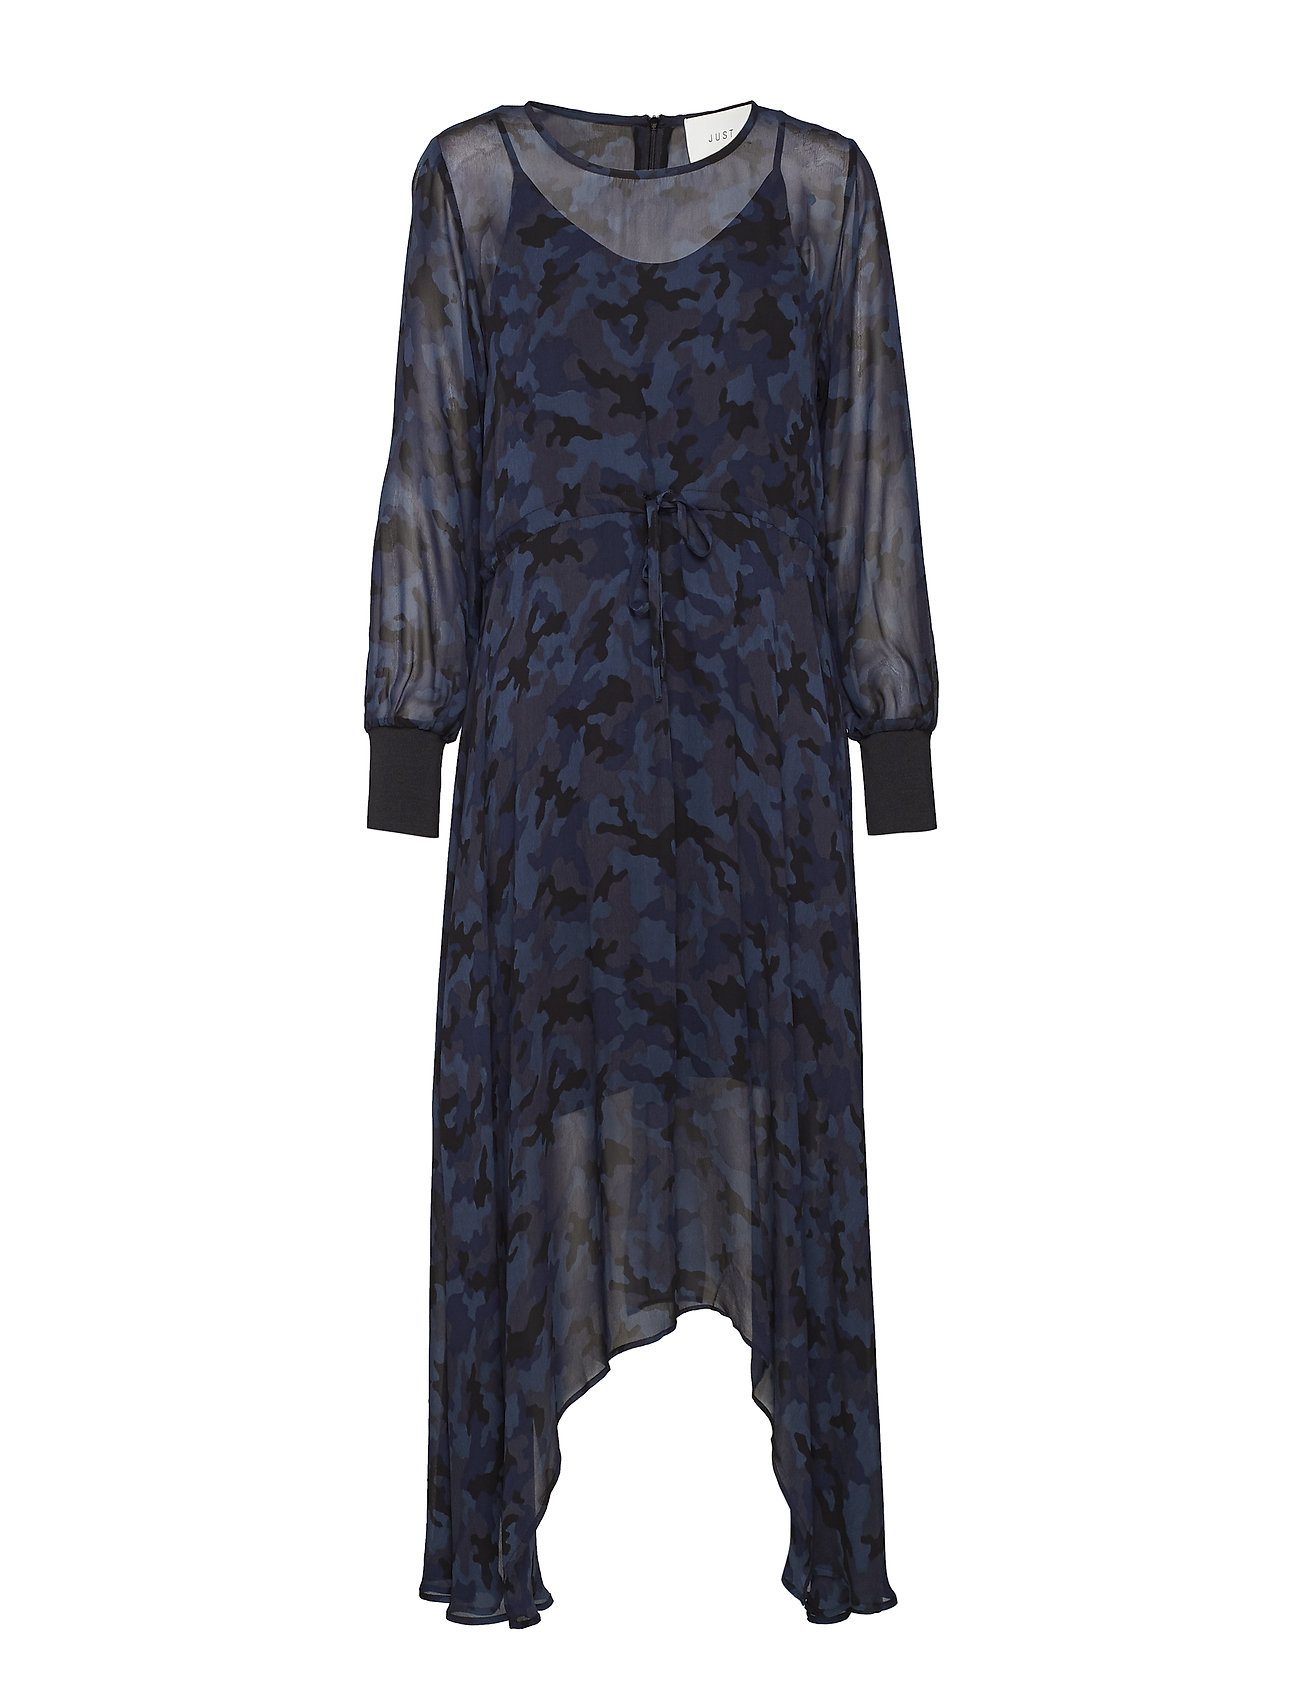 Image of Alex Dress (3073101807)